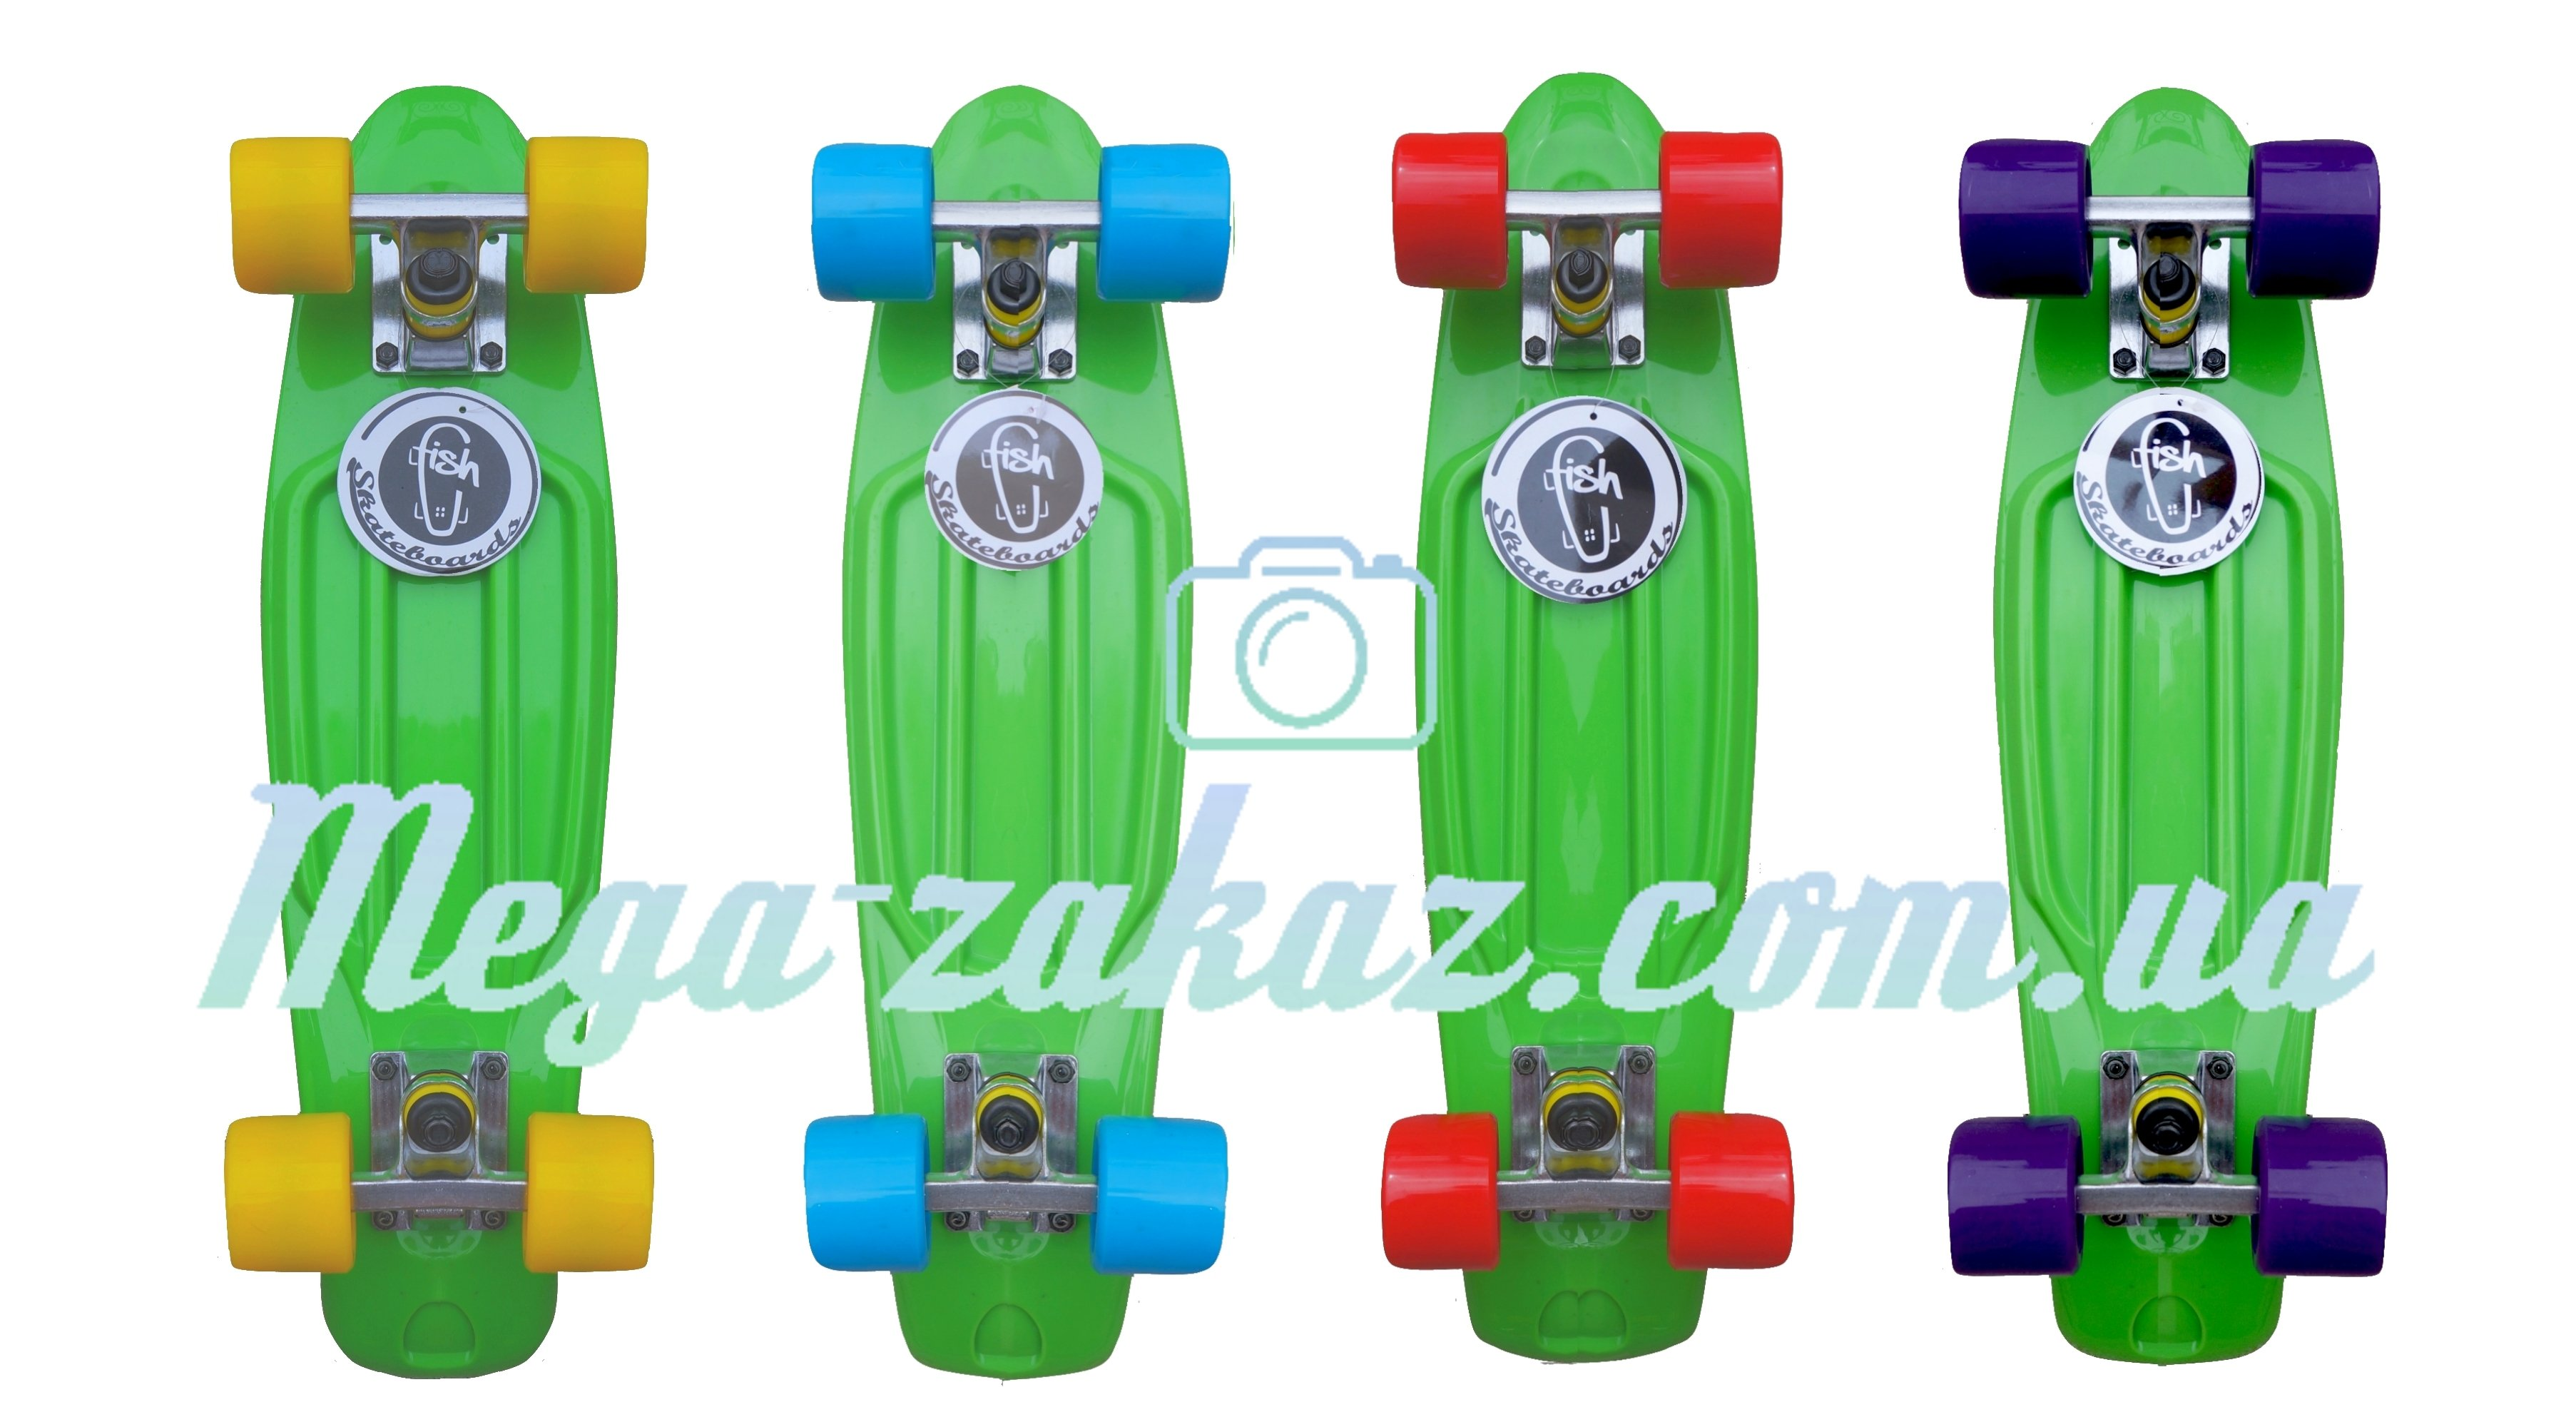 http://mega-zakaz.com.ua/images/upload/penny%20board%20green%20collectionZAKAZ.jpg